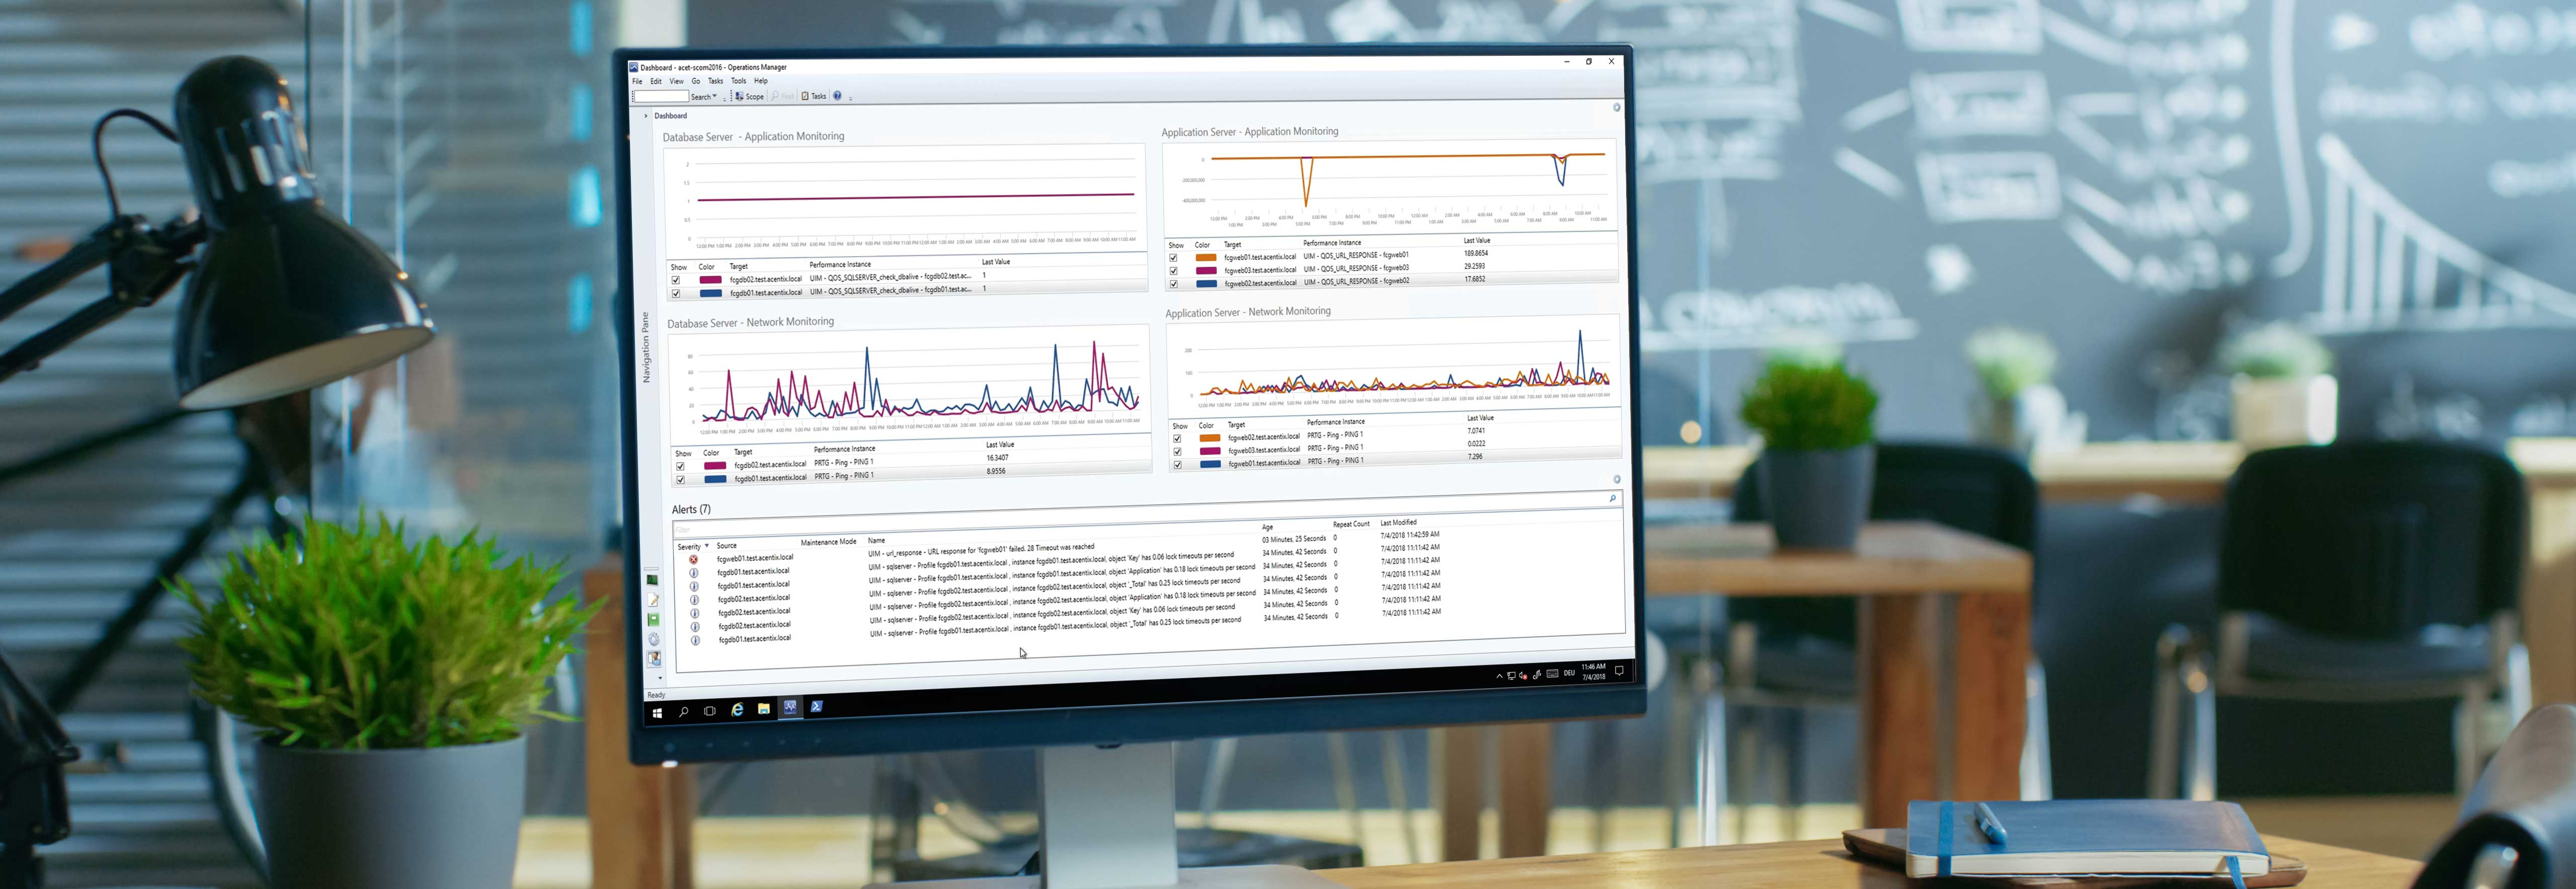 Screen on a desk in an office showing Dashboard with graphs and alerts